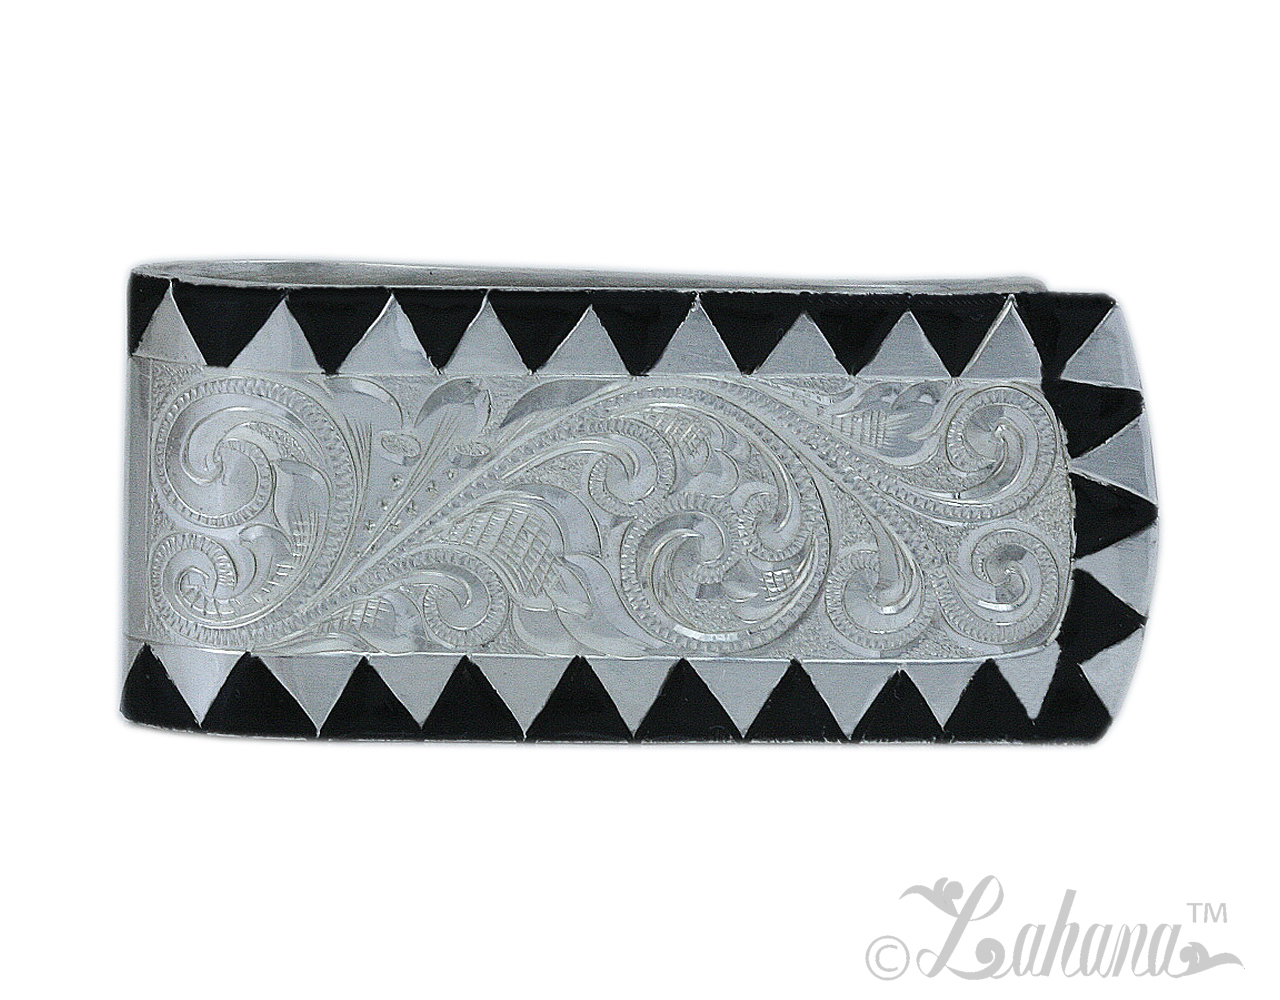 24mm-tapa-intricate-design-money-clip-wm1-67220.1421309318.jpg